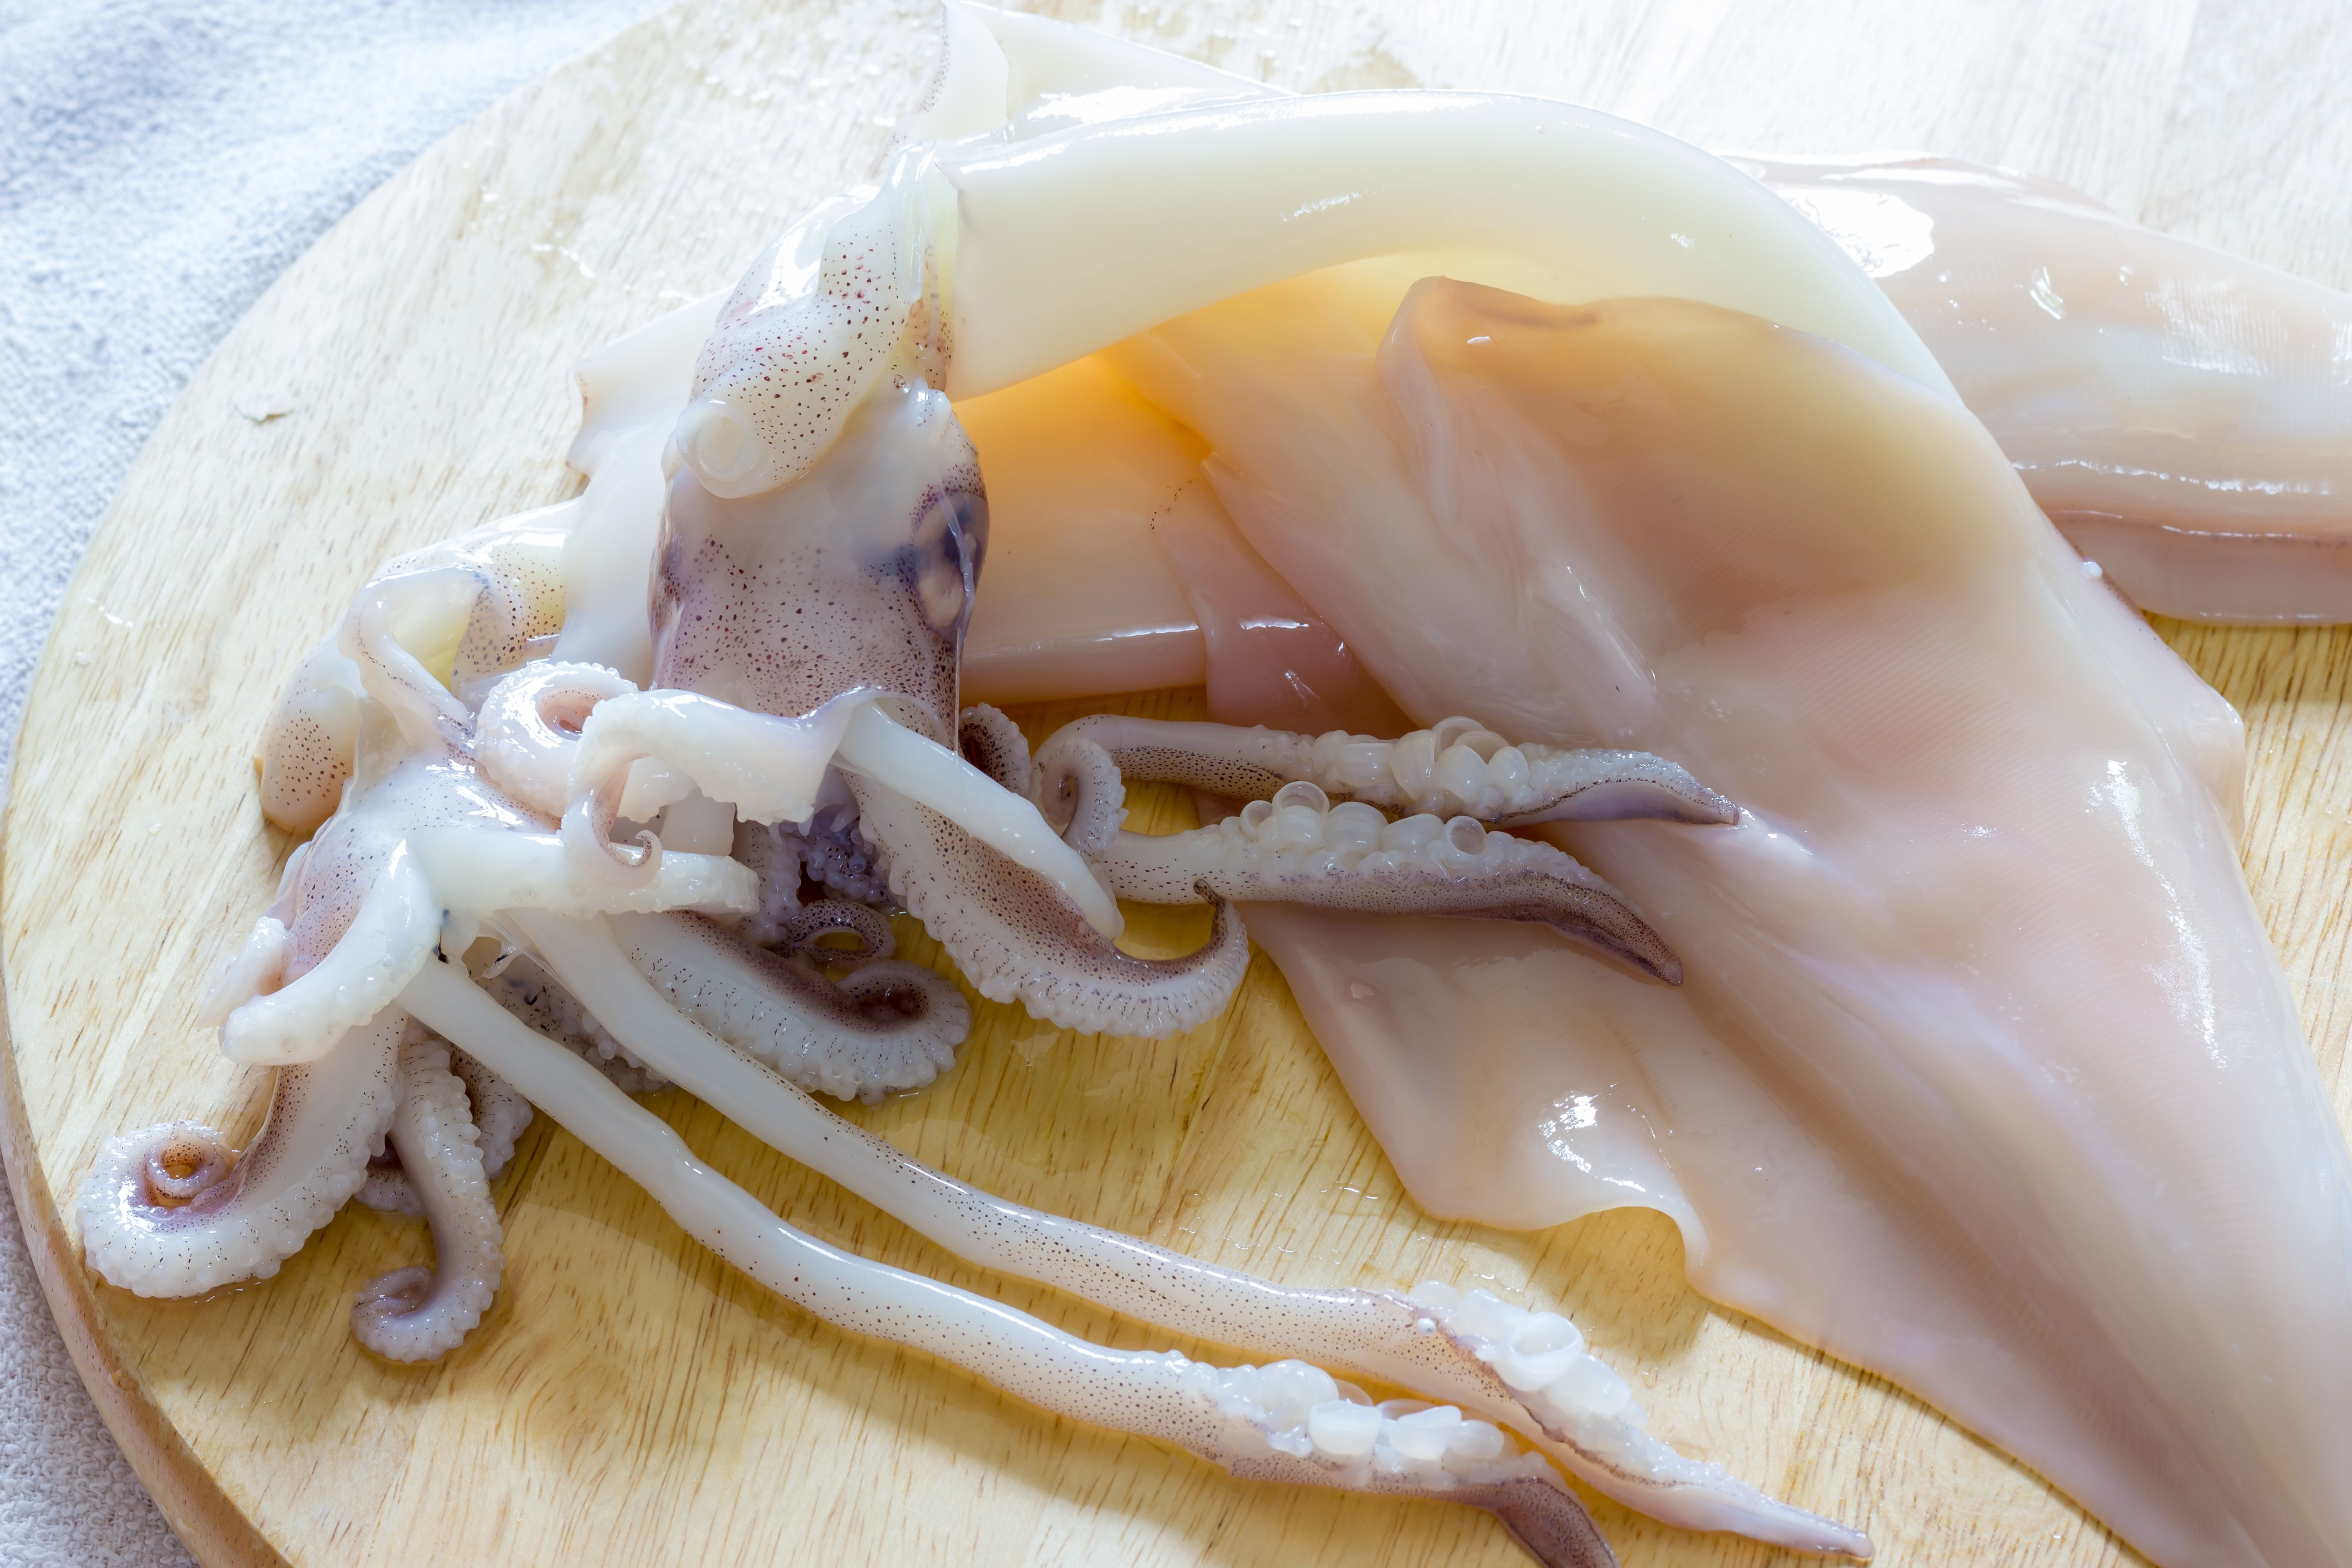 Raw whole squid